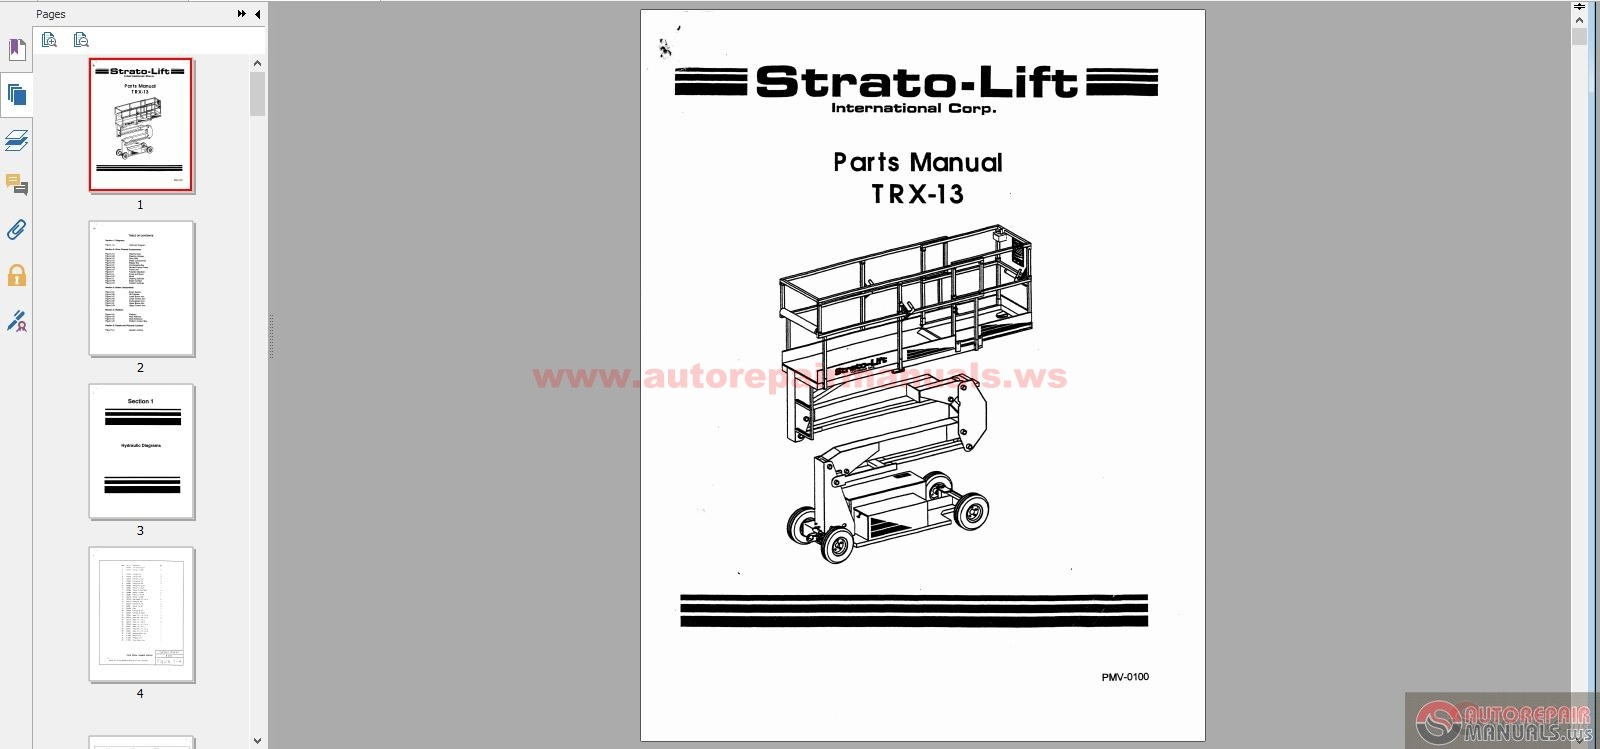 Stratolift Trx13 Parts Manual moreover Genie Wiring Diagram together with Wiring Diagram Schematics For Motorcycles Html besides Grove Manlift Parts And Service further Genie Schematic Diagram Manual. on genie s60 wiring diagram